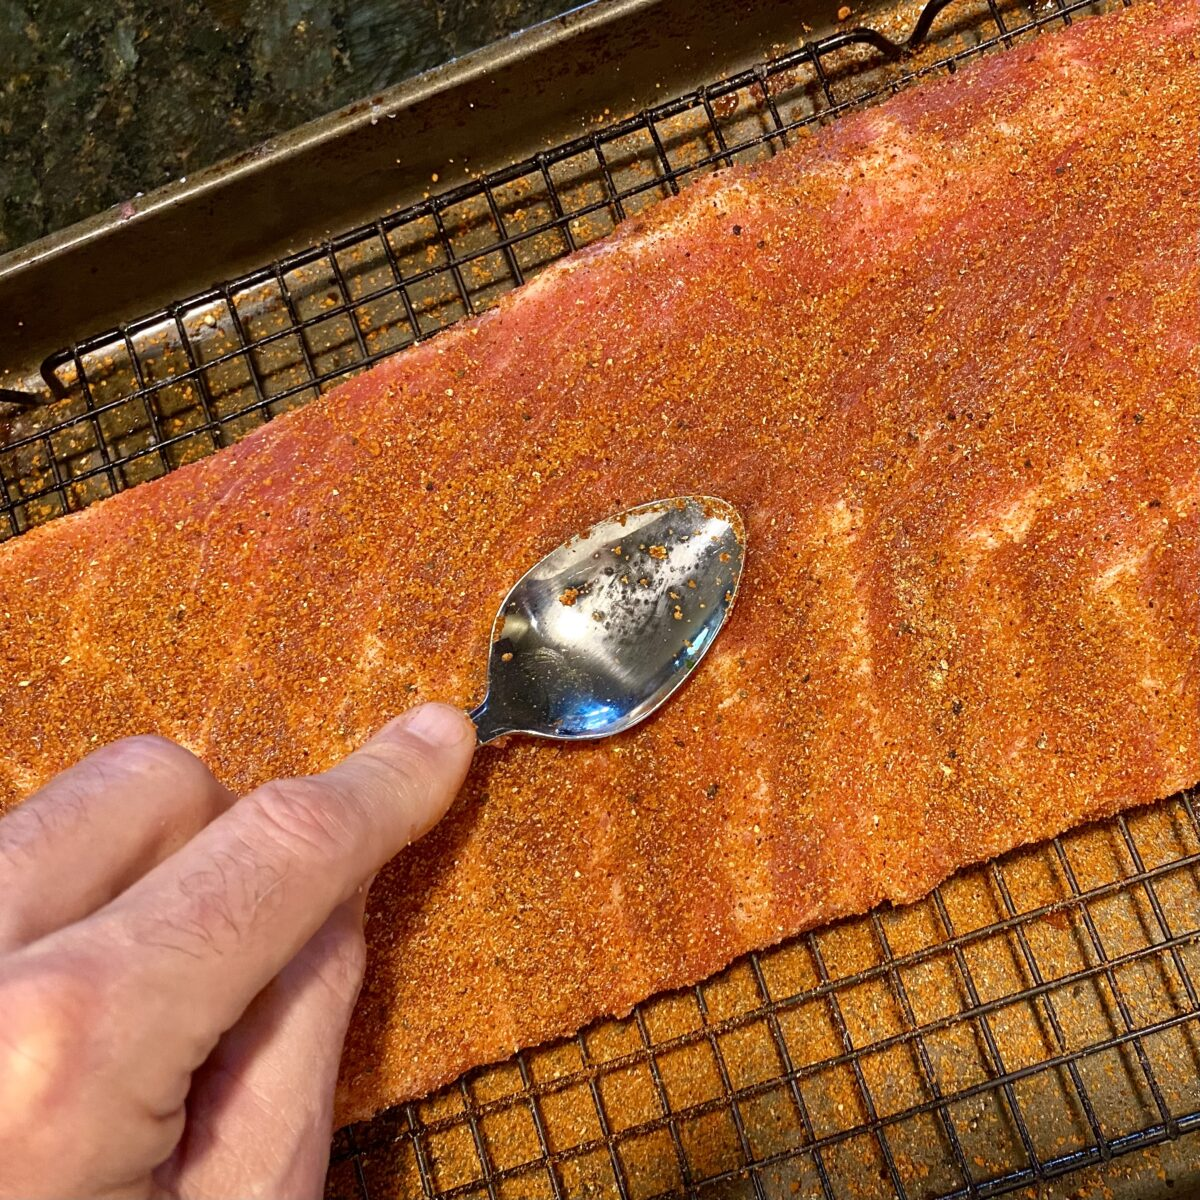 Top view showing how to use the back of a spoon to work the rib rub into the ribs.